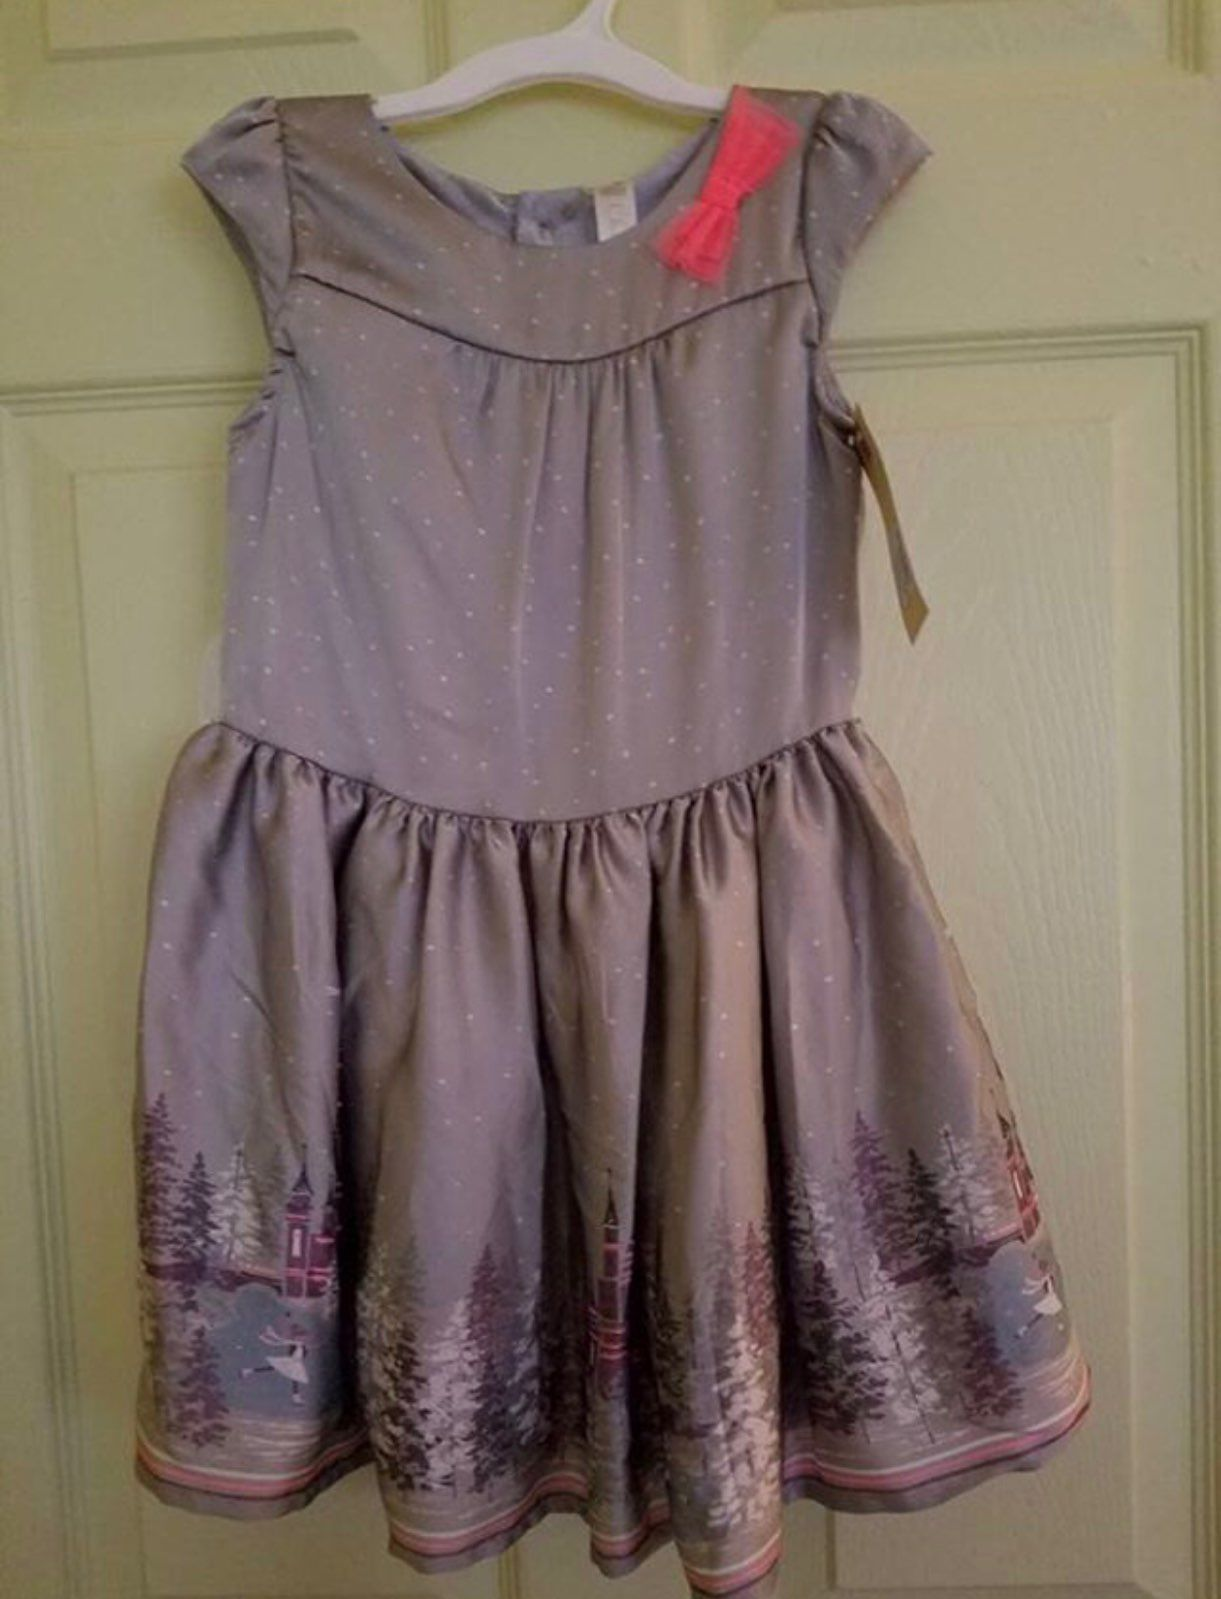 5T Purple Holiday Dress And Sweater - Mercari: BUY & SELL THINGS ...